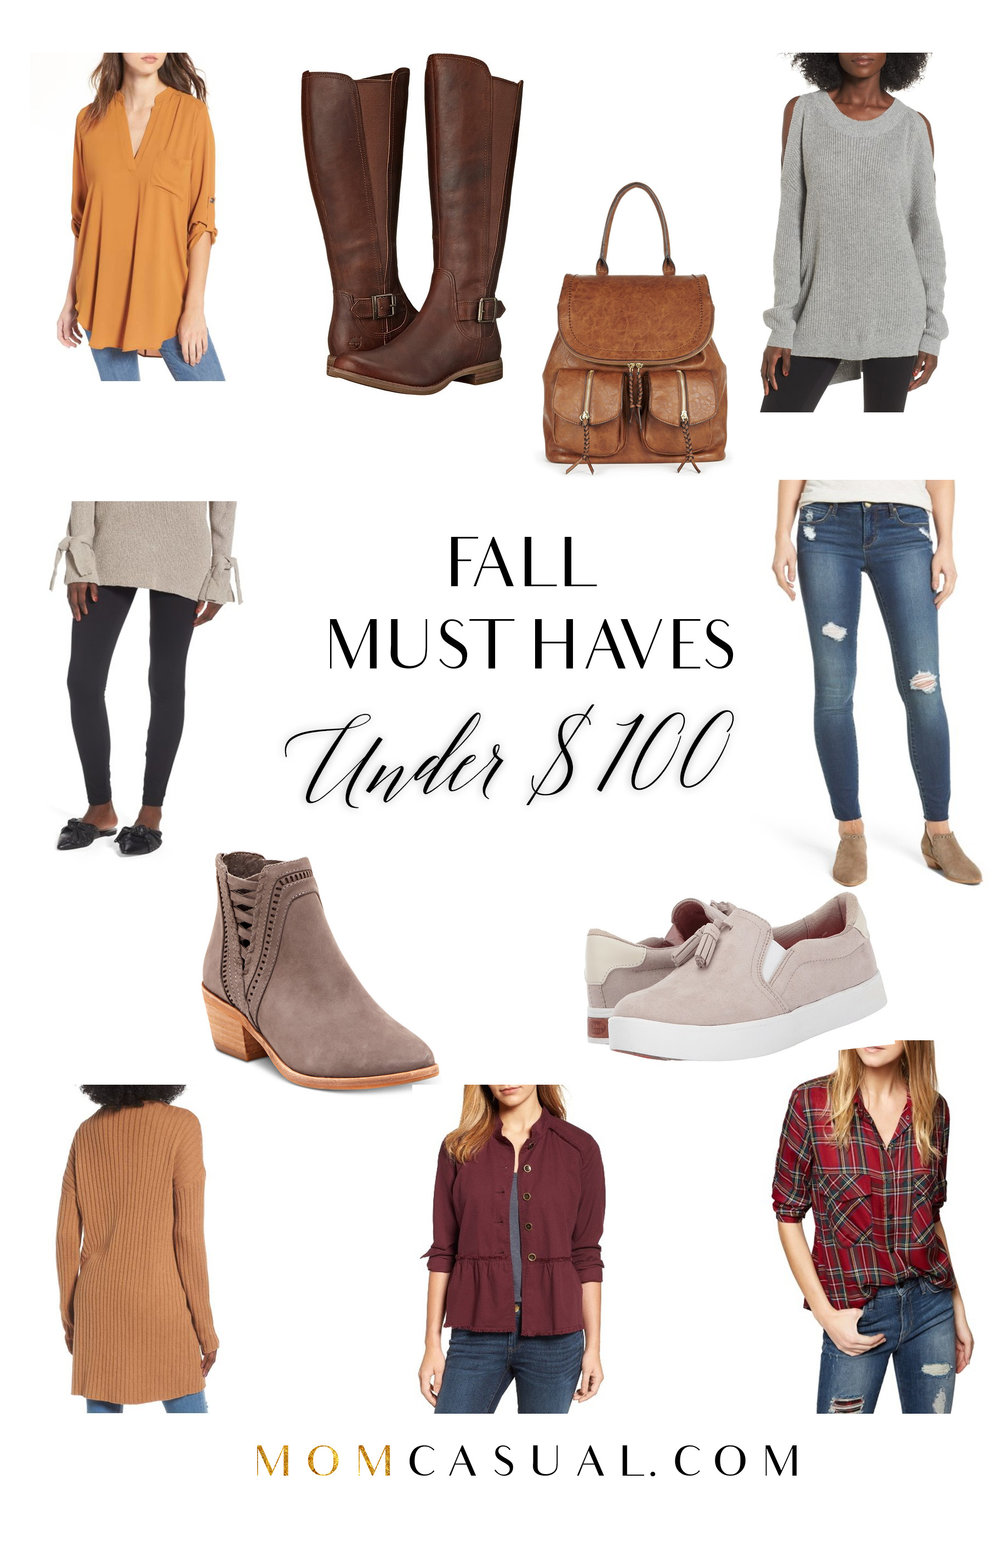 Fall Must Haves Under $100.jpg